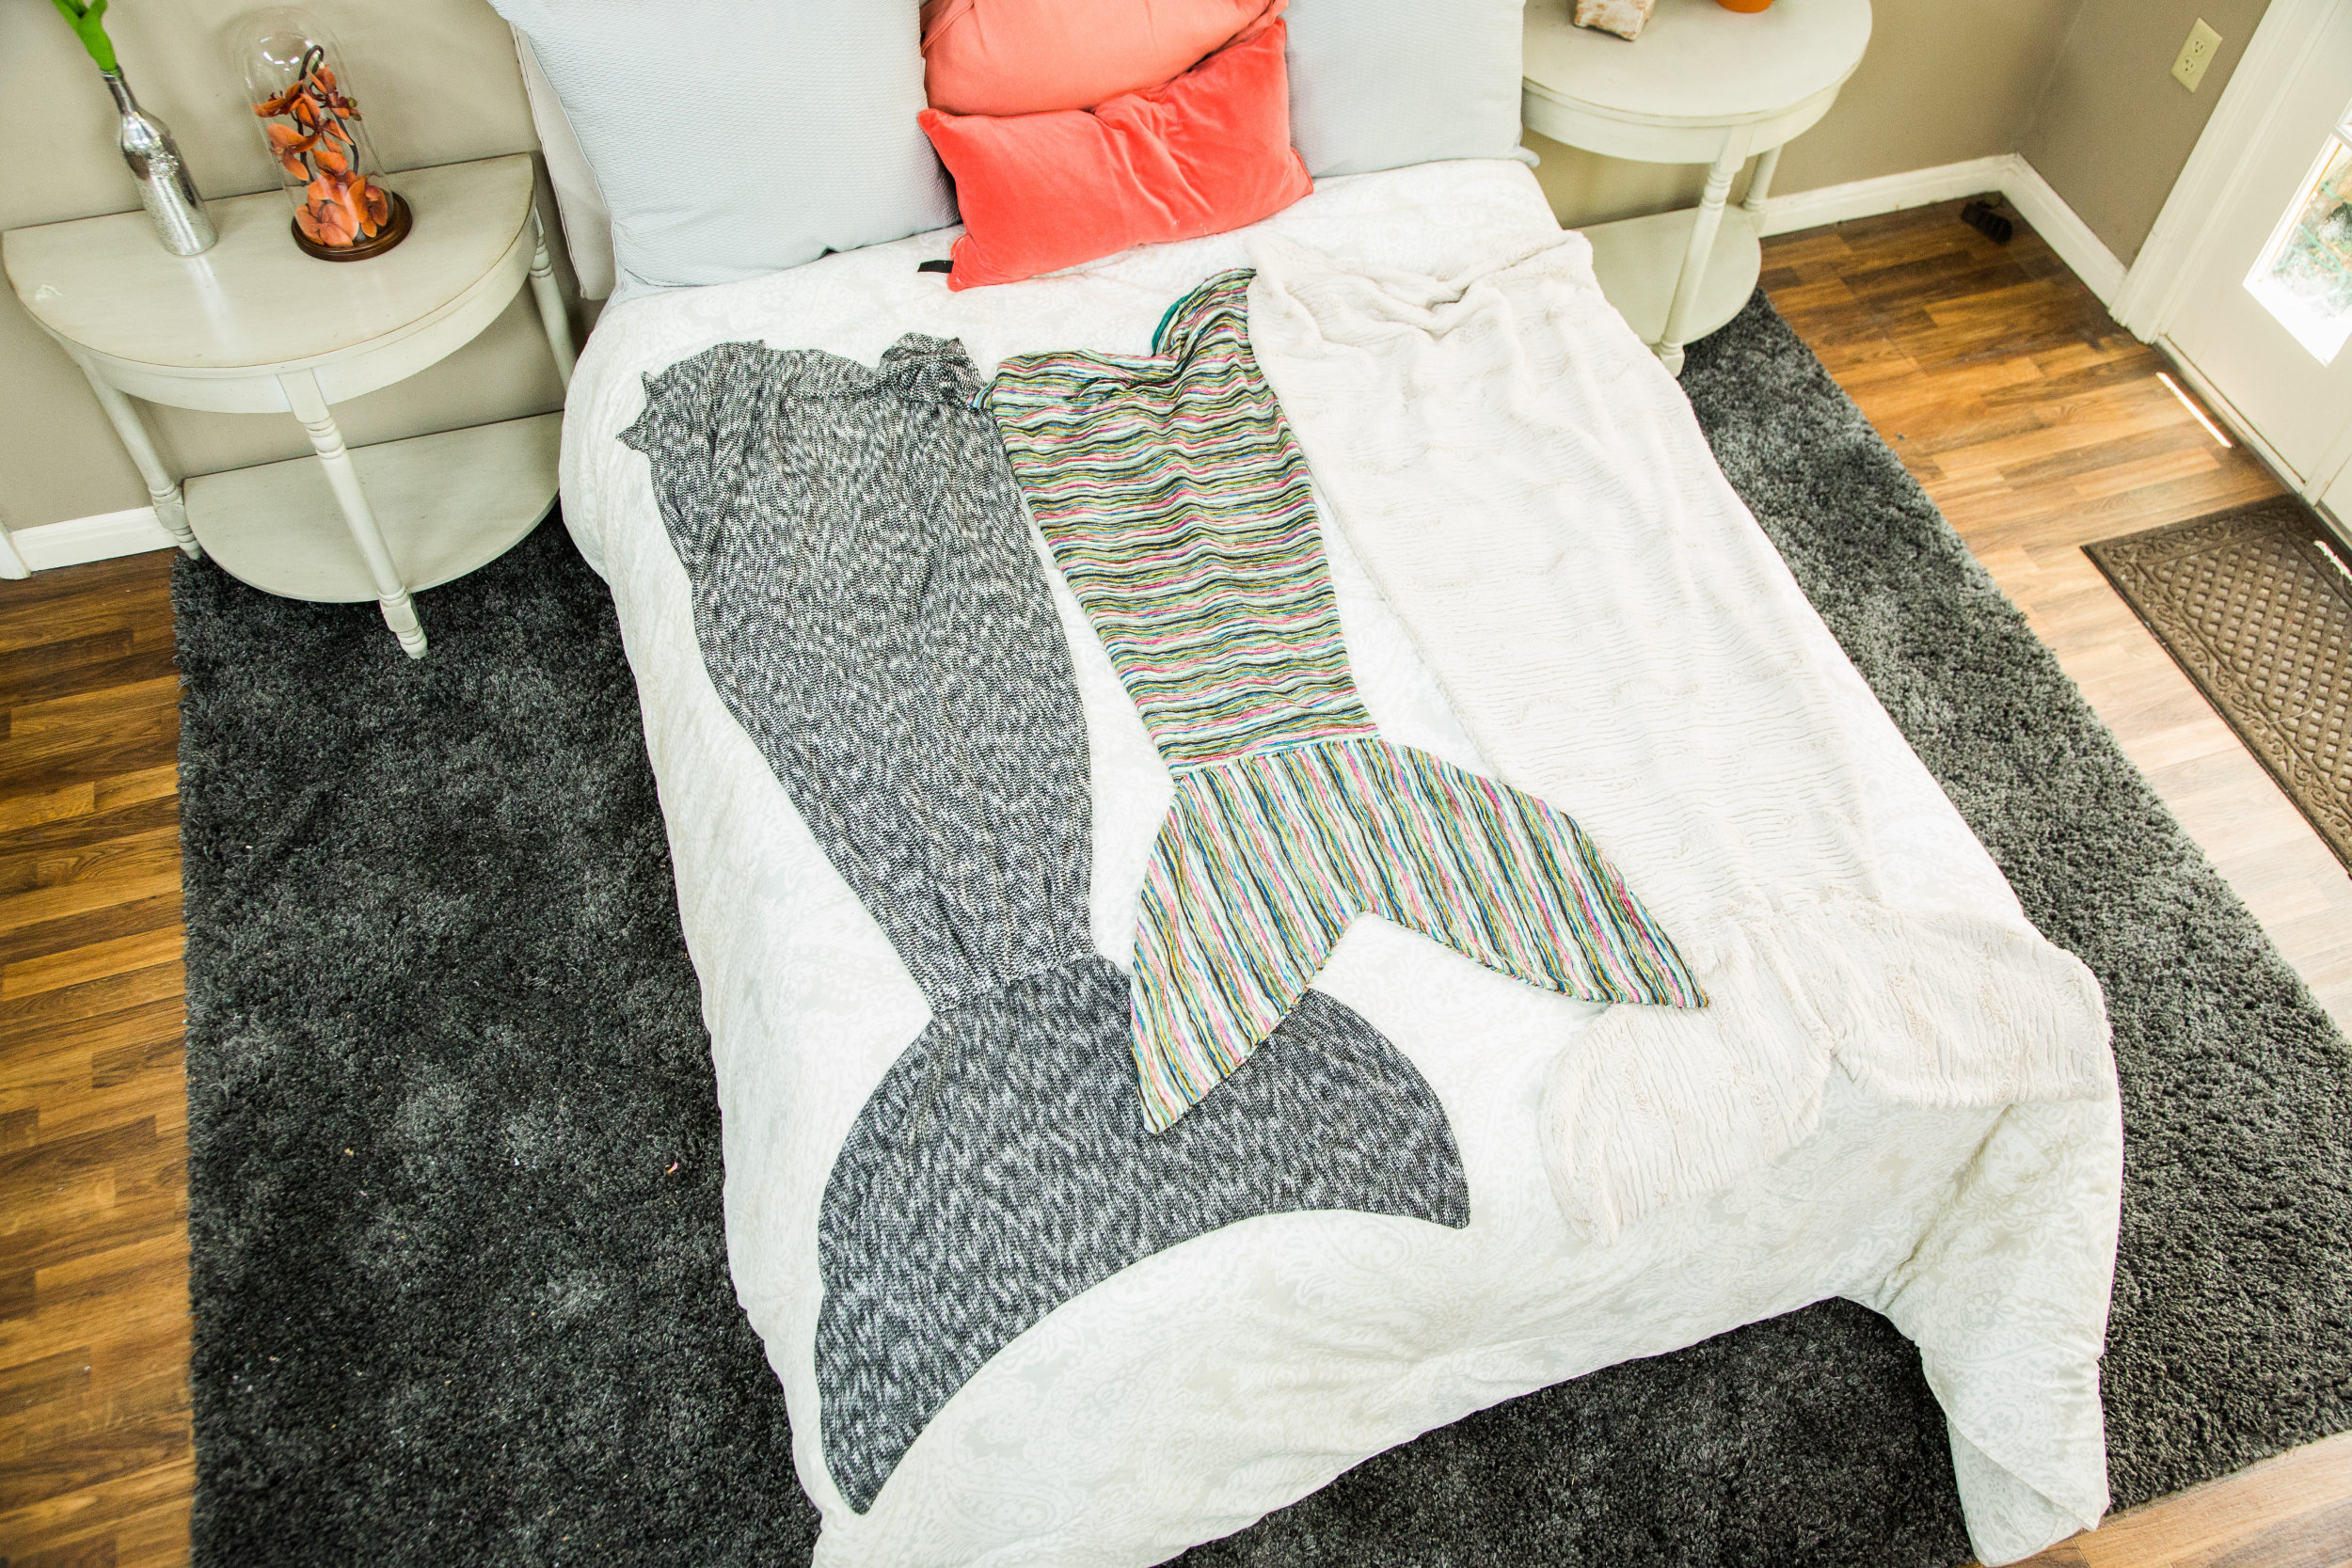 How To Home Amp Family Diy Mermaid Tail Blanket